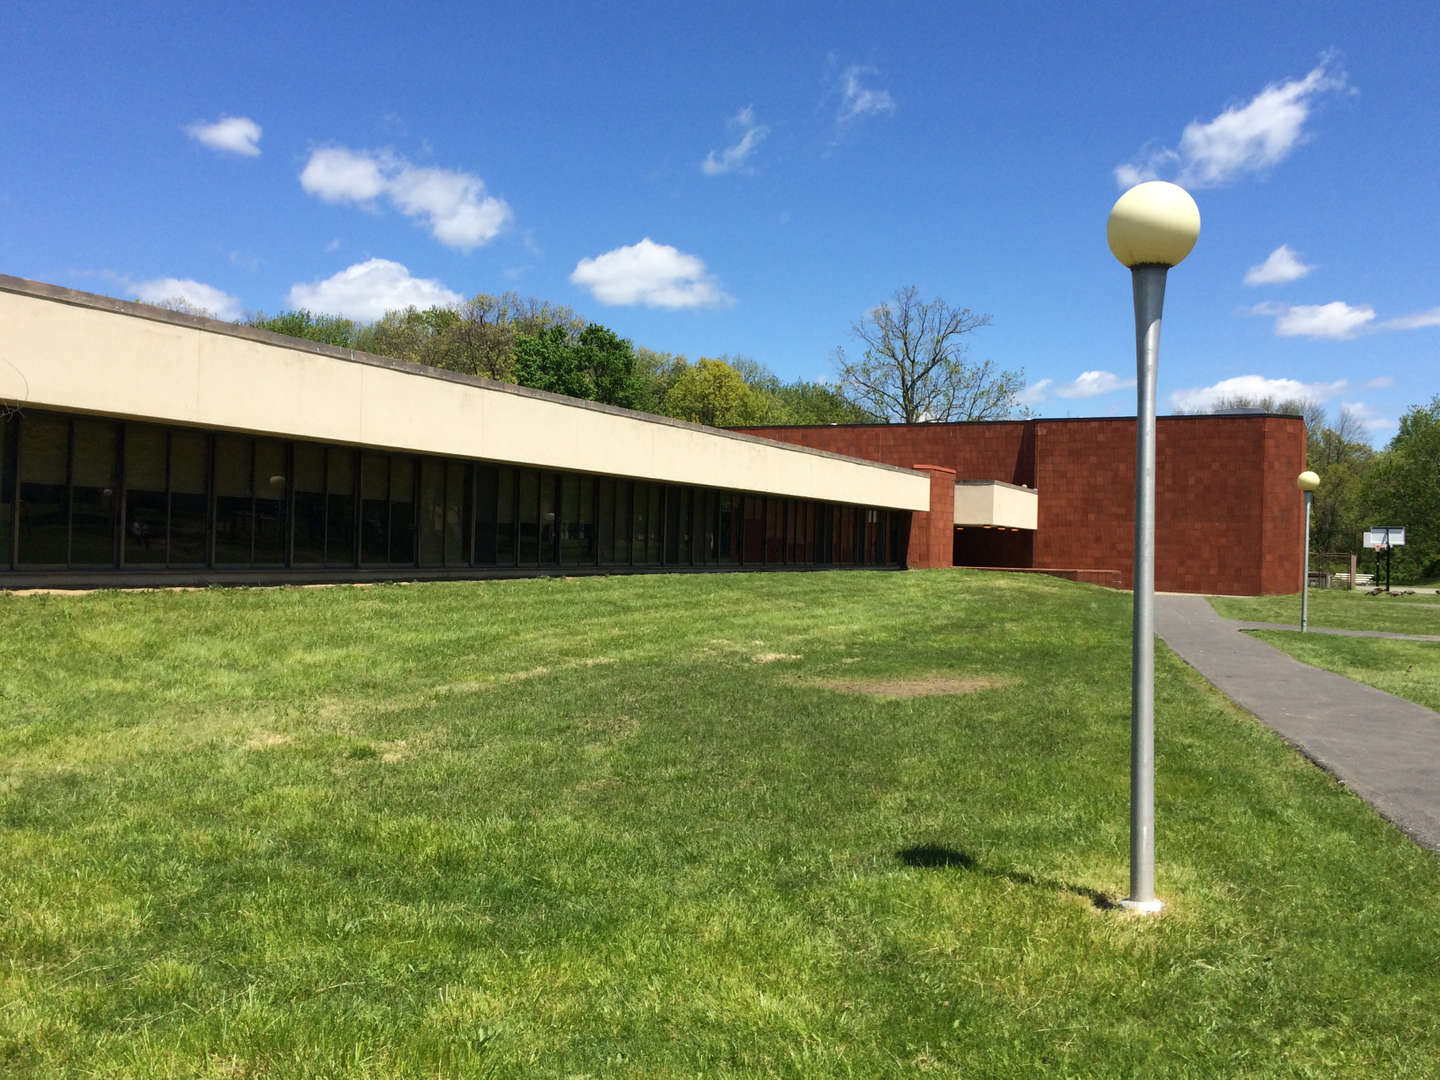 View of Edenwald School with light post.